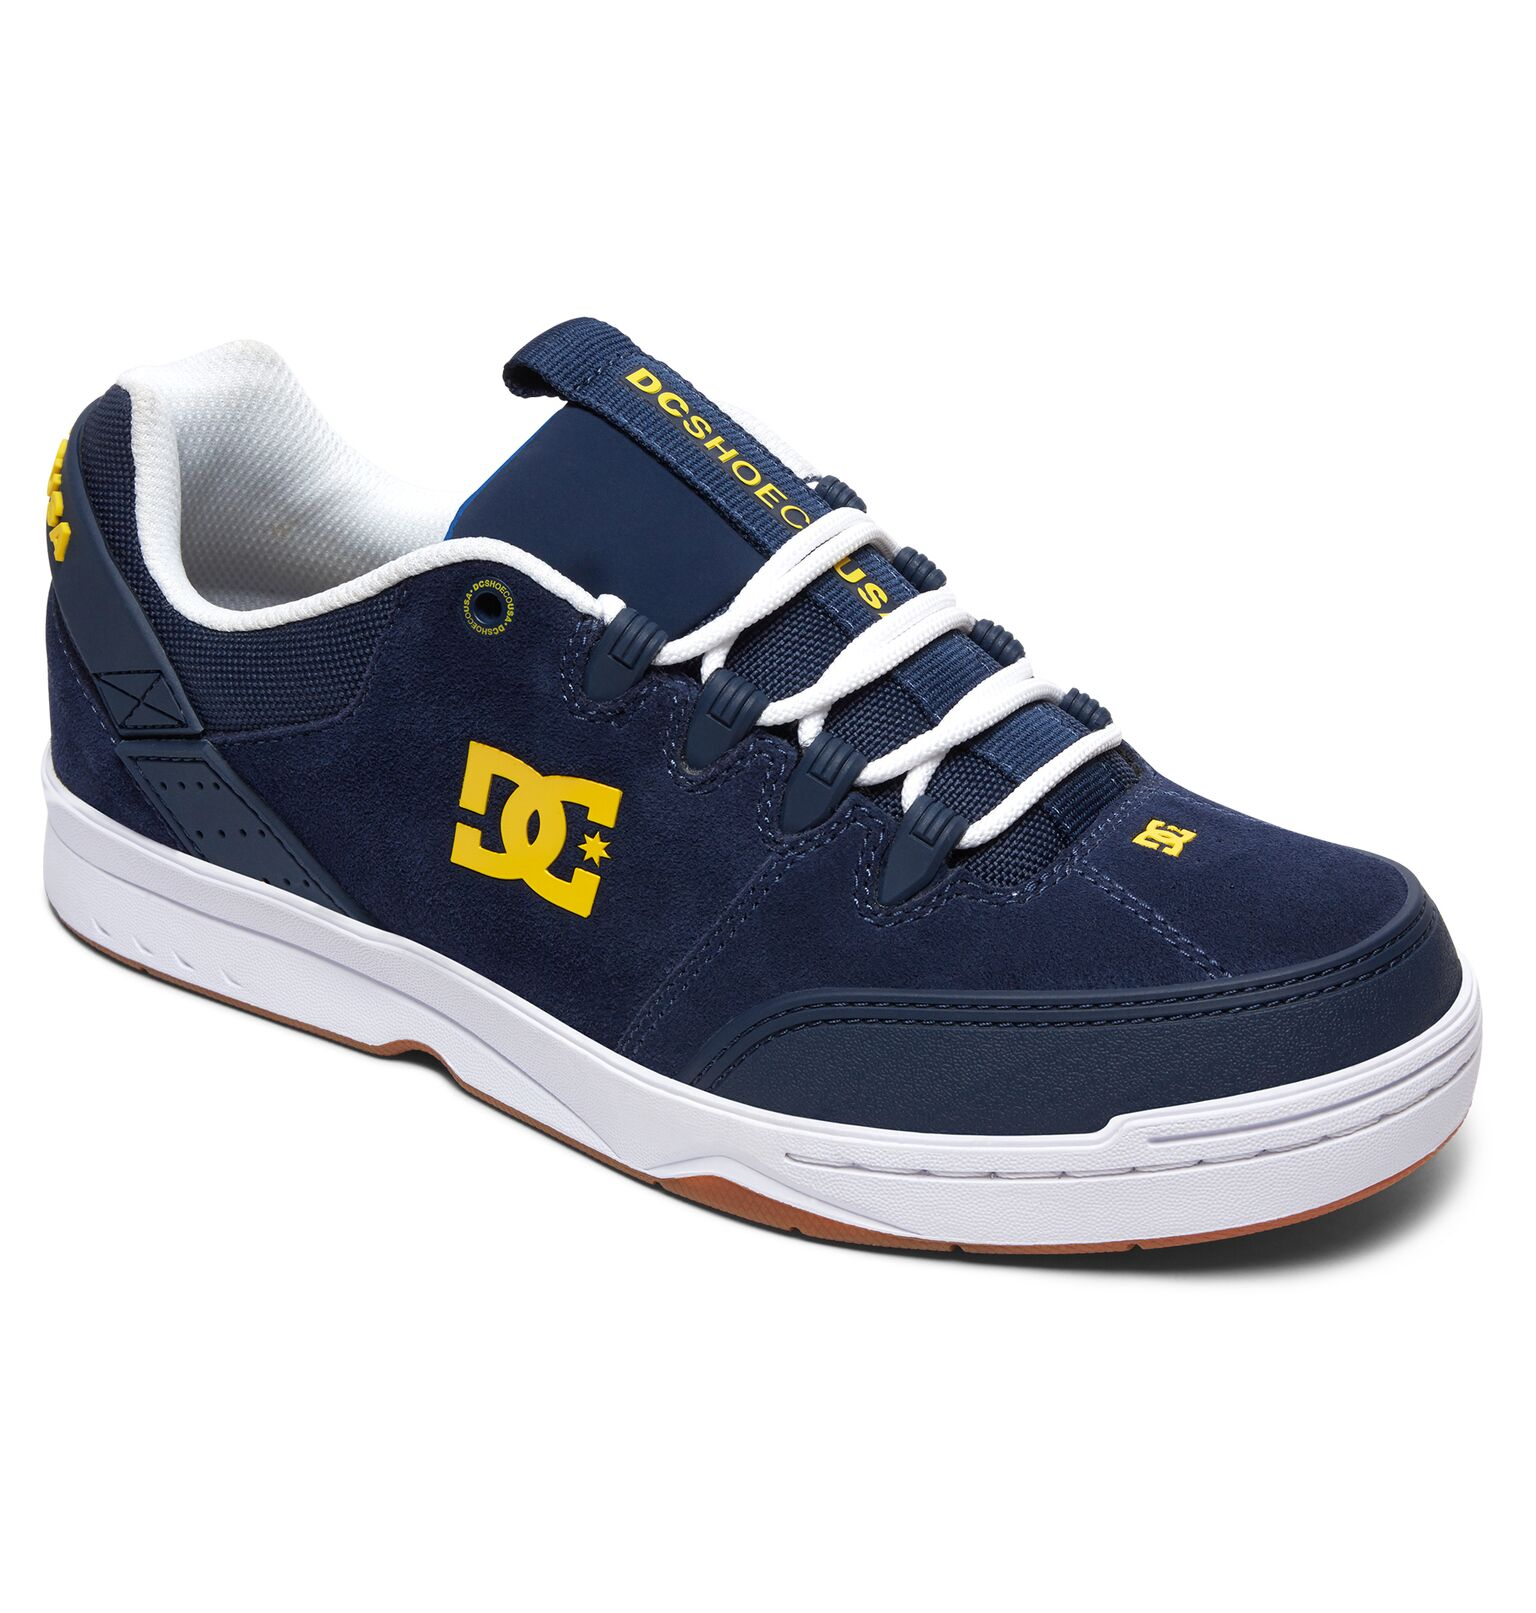 DC Shoes 94 collection syntax